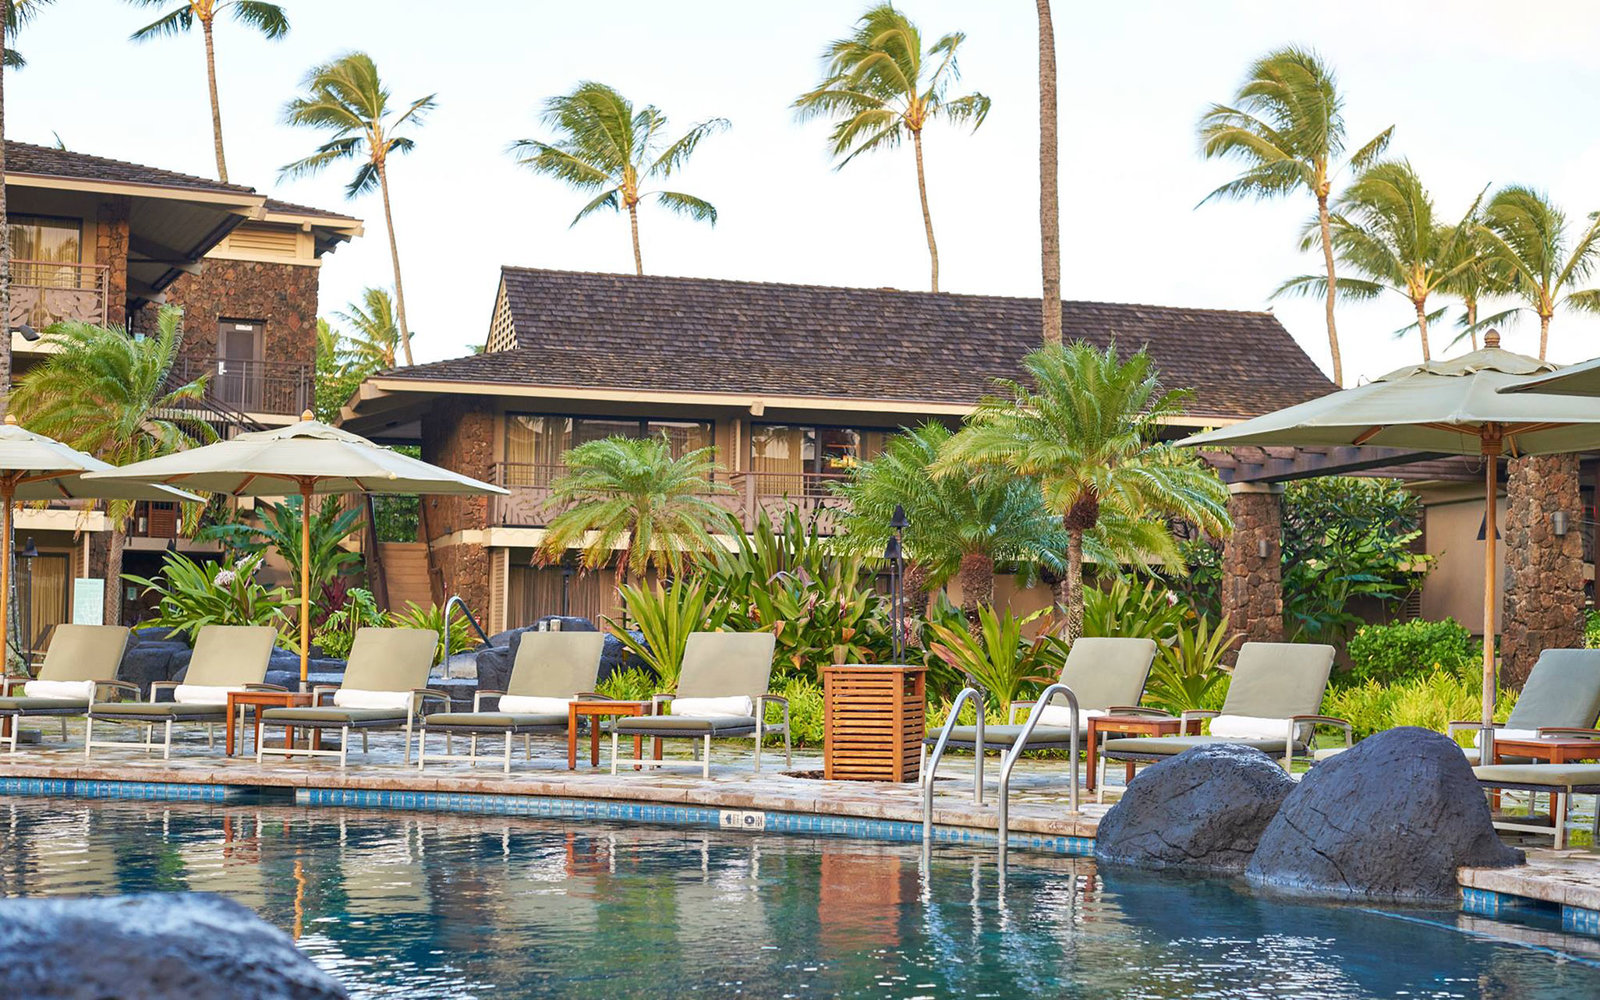 No. 4: Ko'a Kea Hotel & Resort